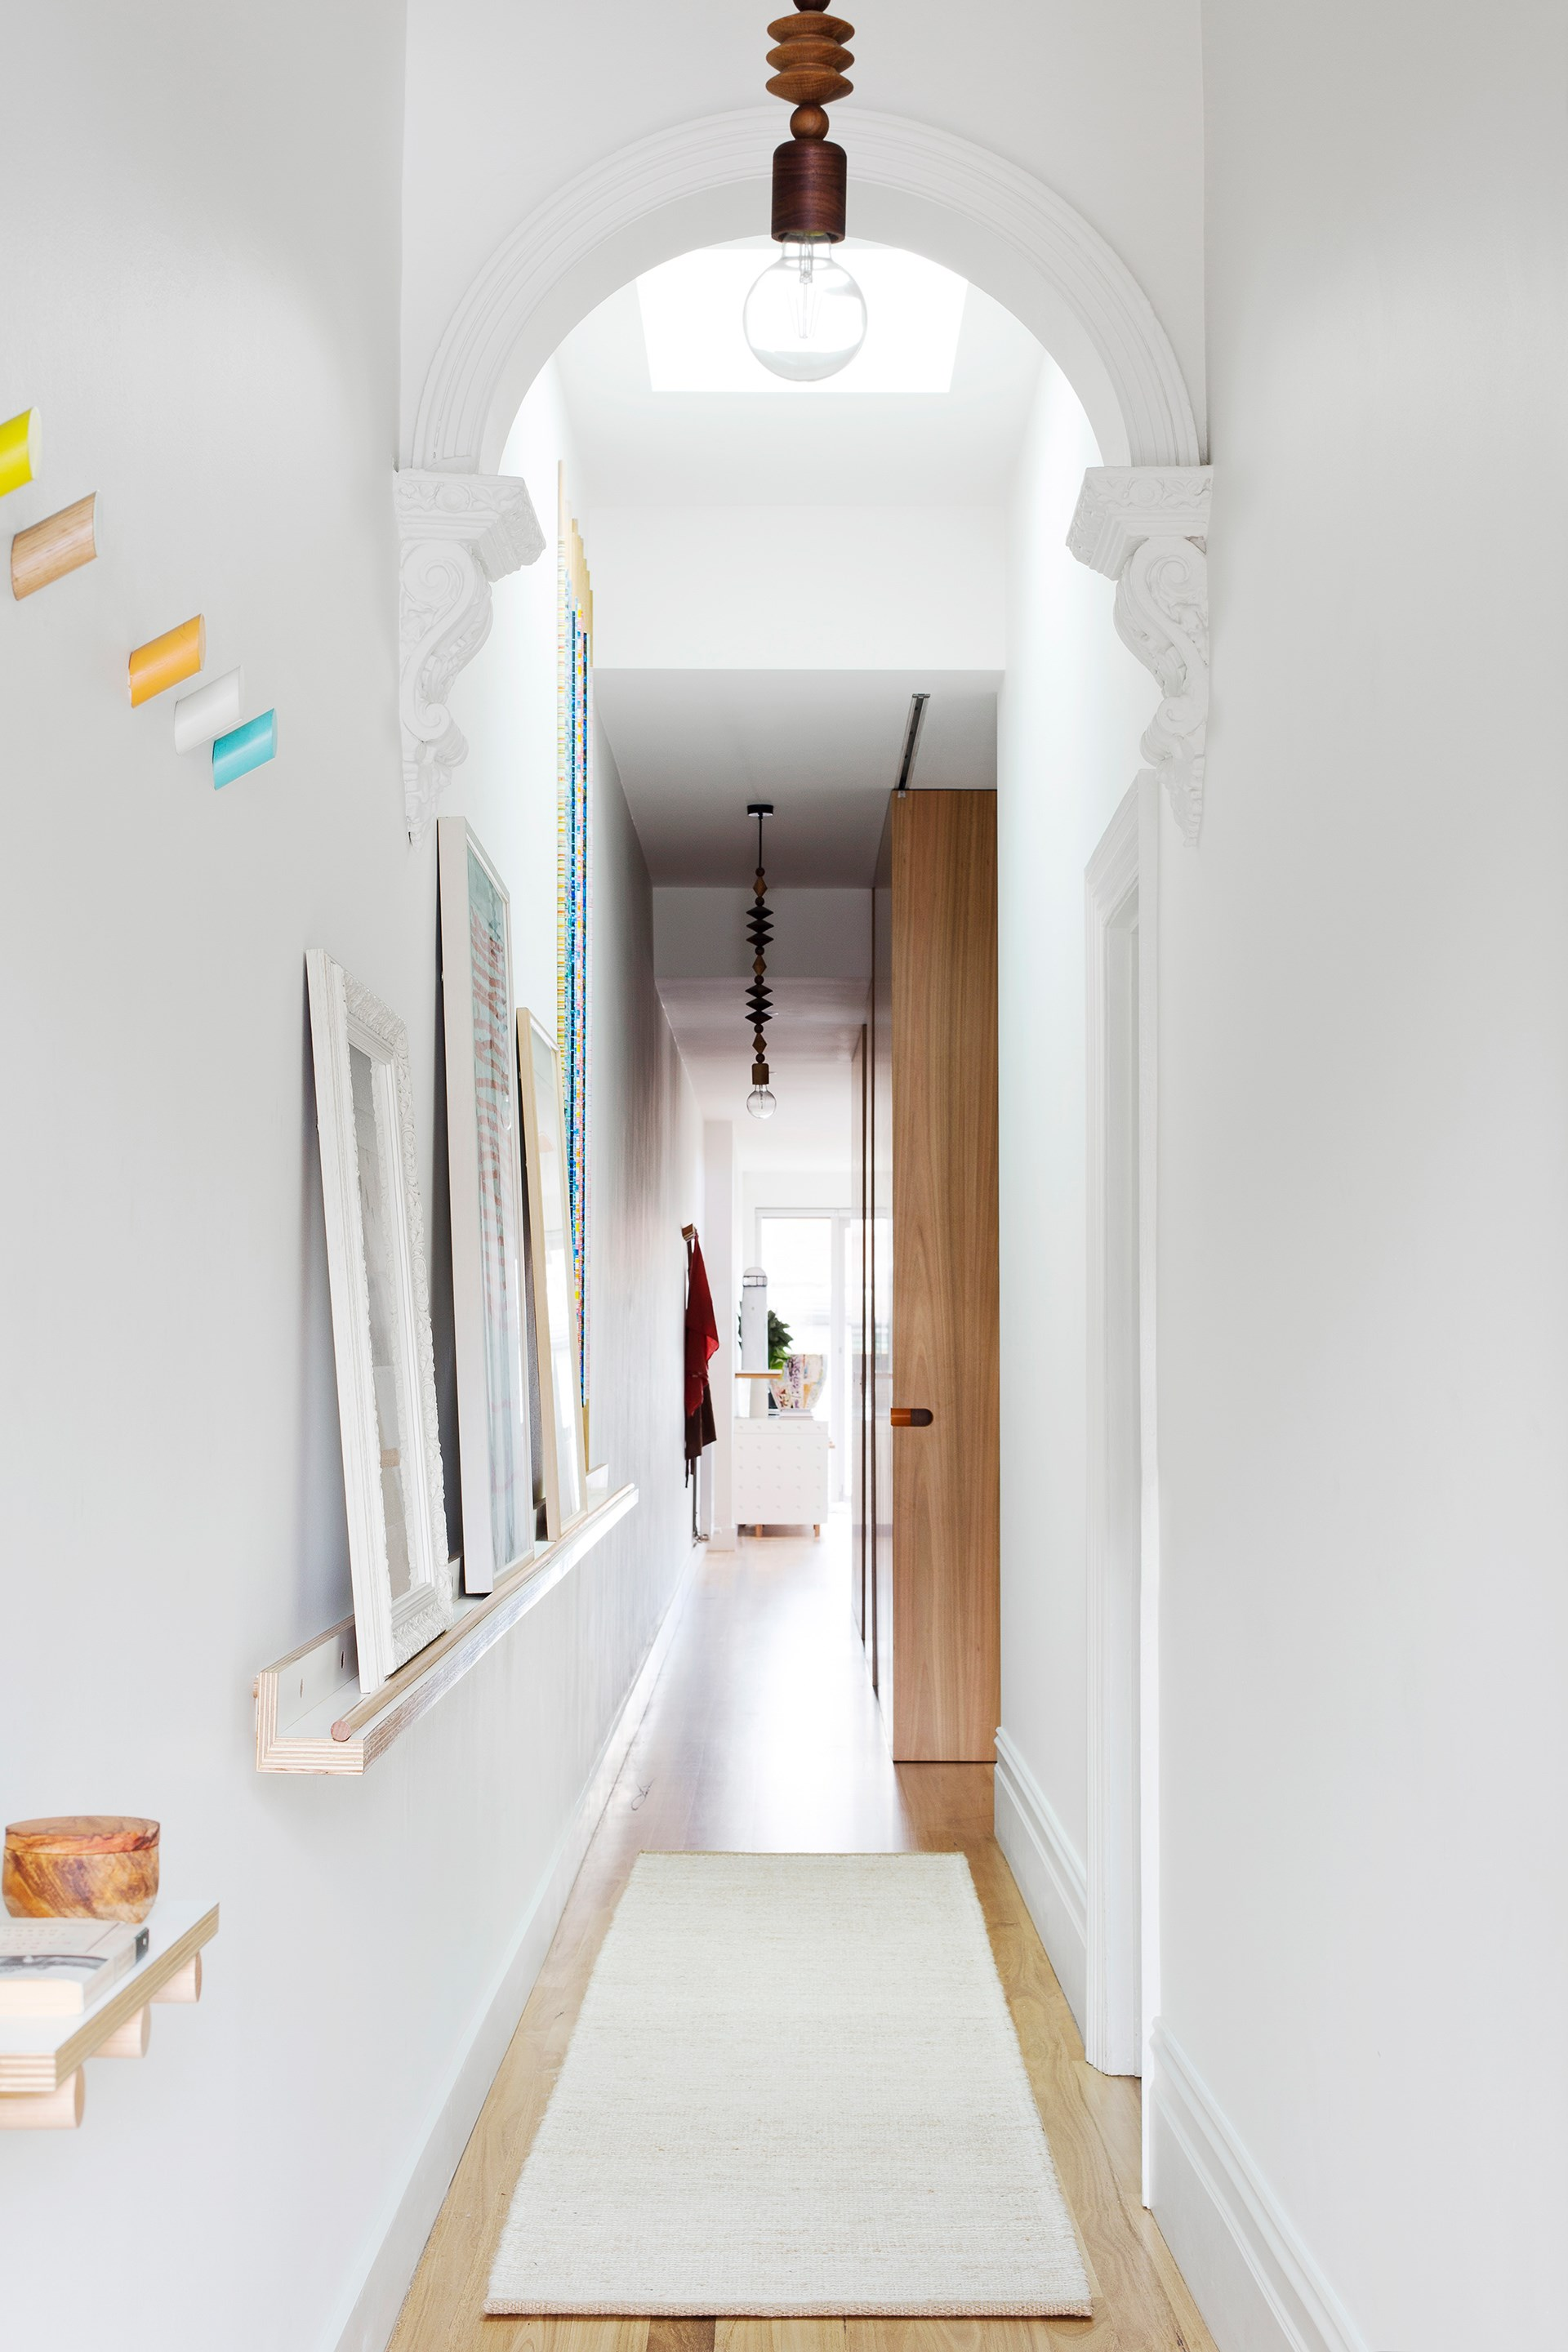 Only cosmetic changes have been made in the bespoke renovation of this [single-fronted Victorian terrace](http://www.homestolove.com.au/bespoke-renovation-of-an-old-victorian-terrace-4456) that has been inspired by the owners love of art. Photo: Martina Gemmola / Australian House & Garden